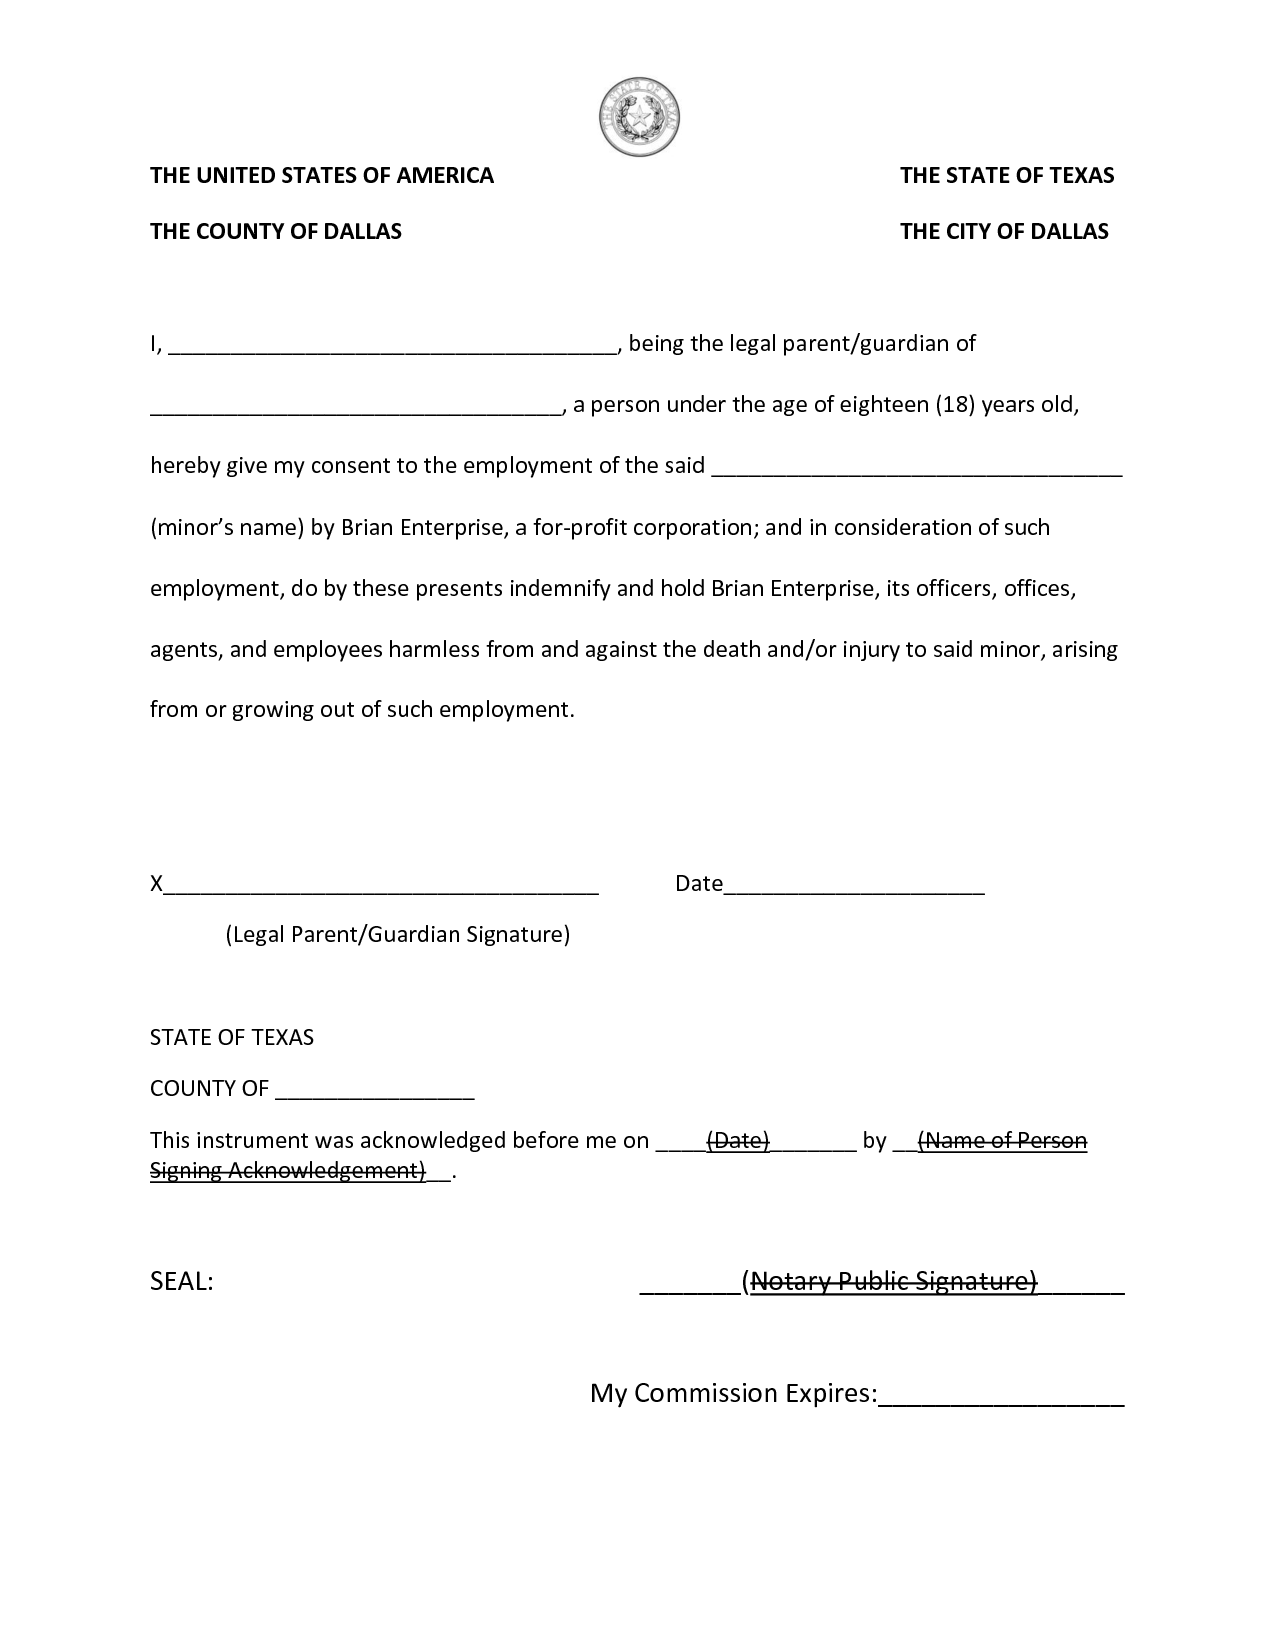 Texas Notary Public Template